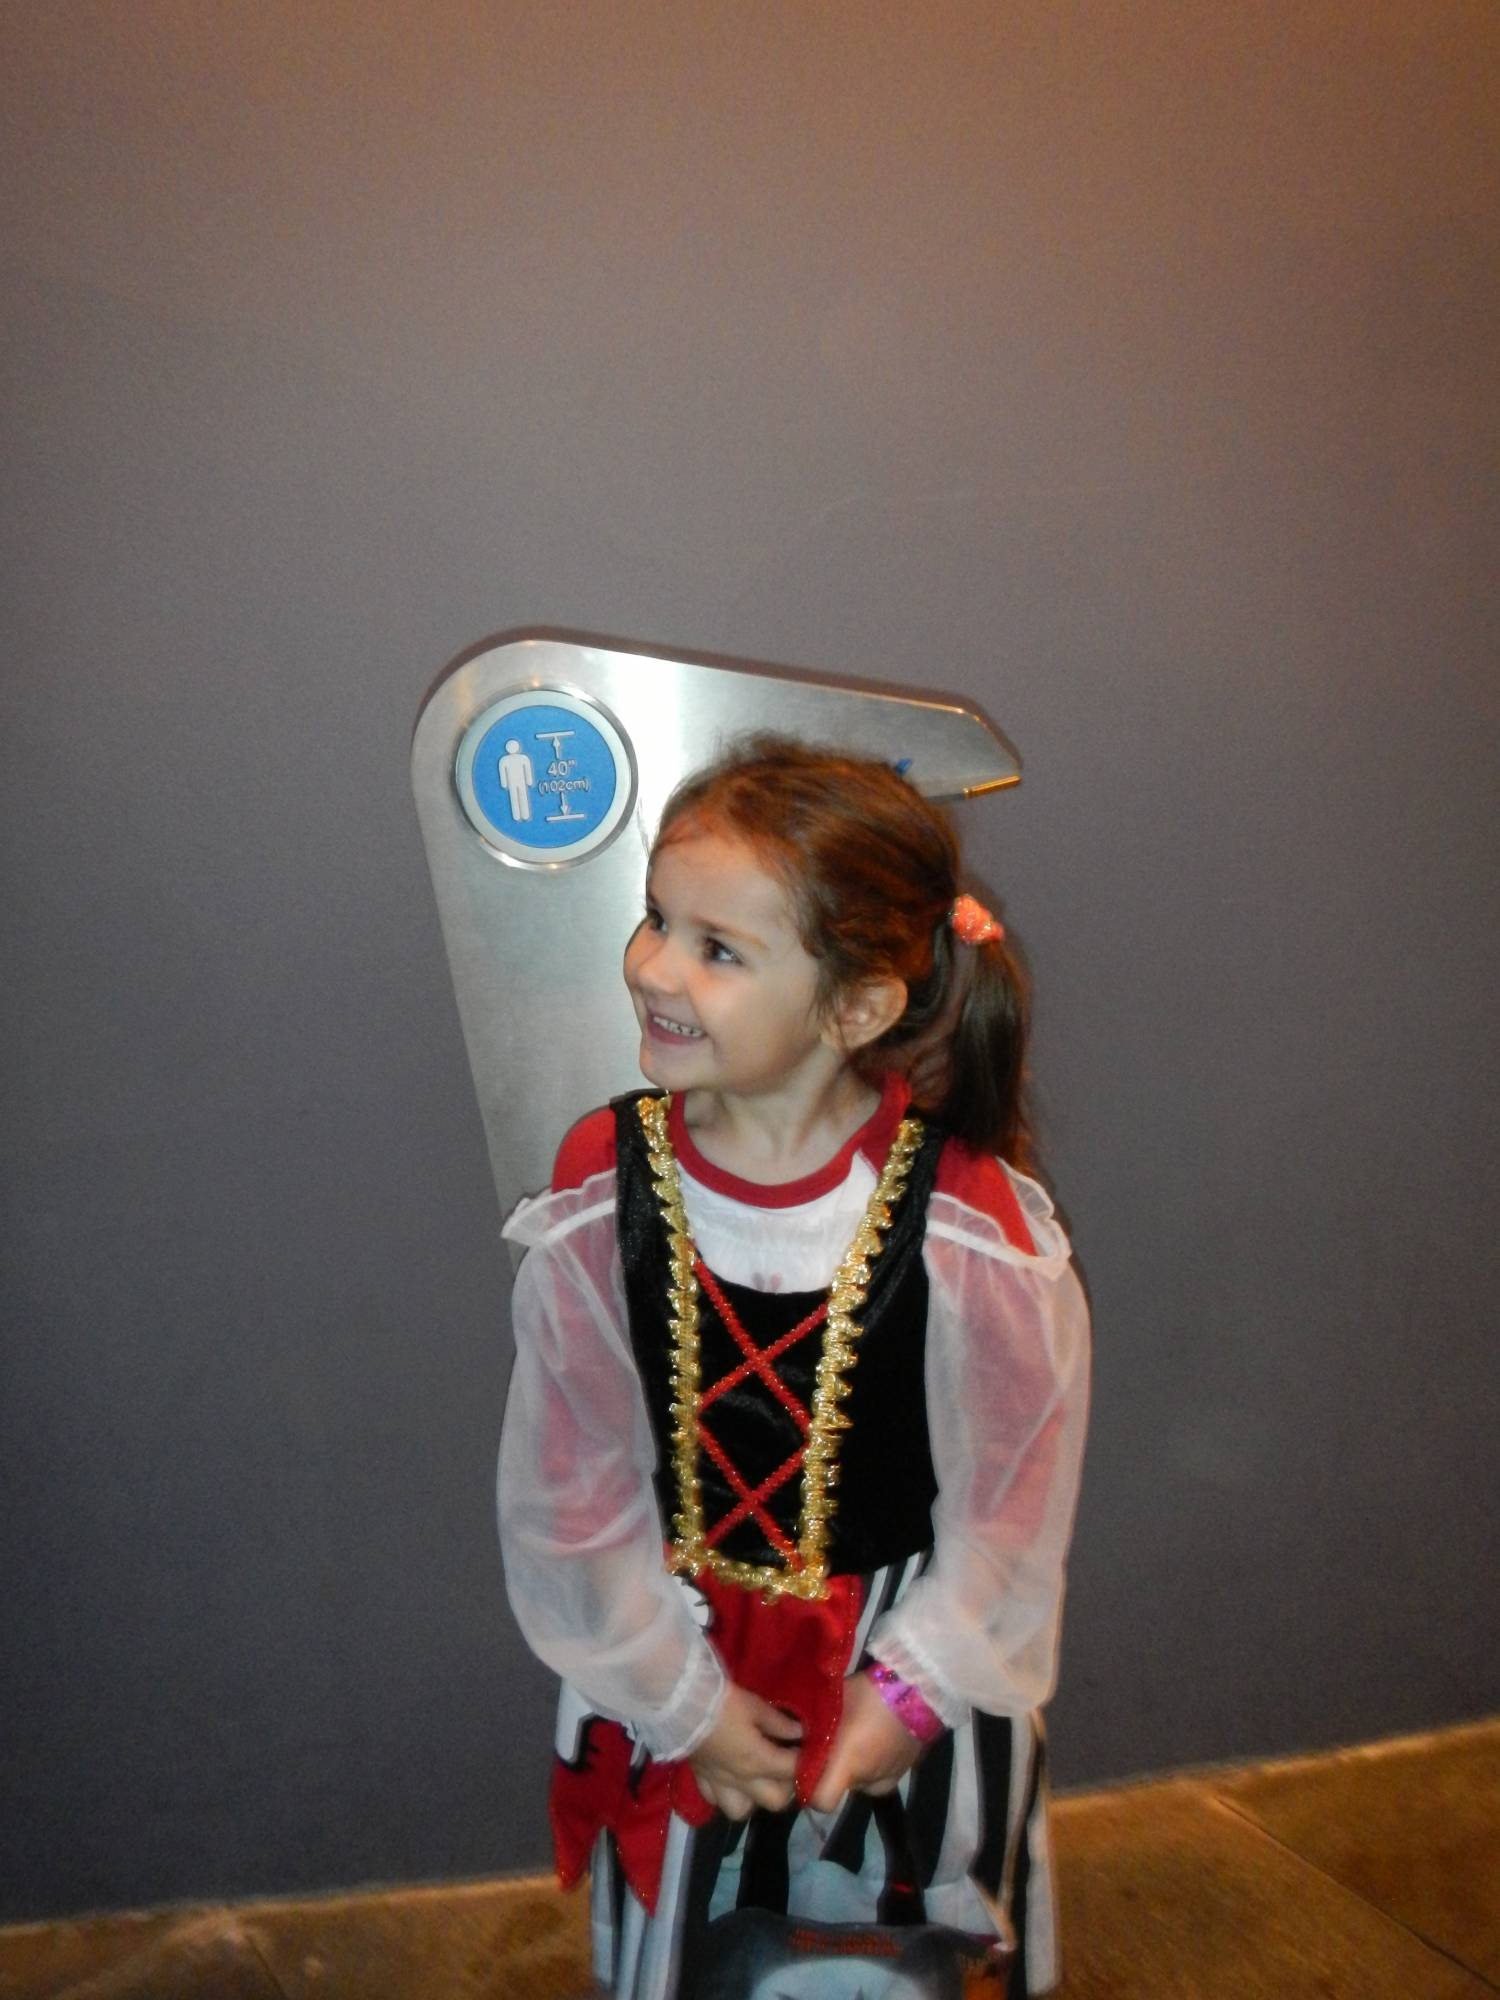 My daughter is excited that she's tall enough to ride Star Tours. photo